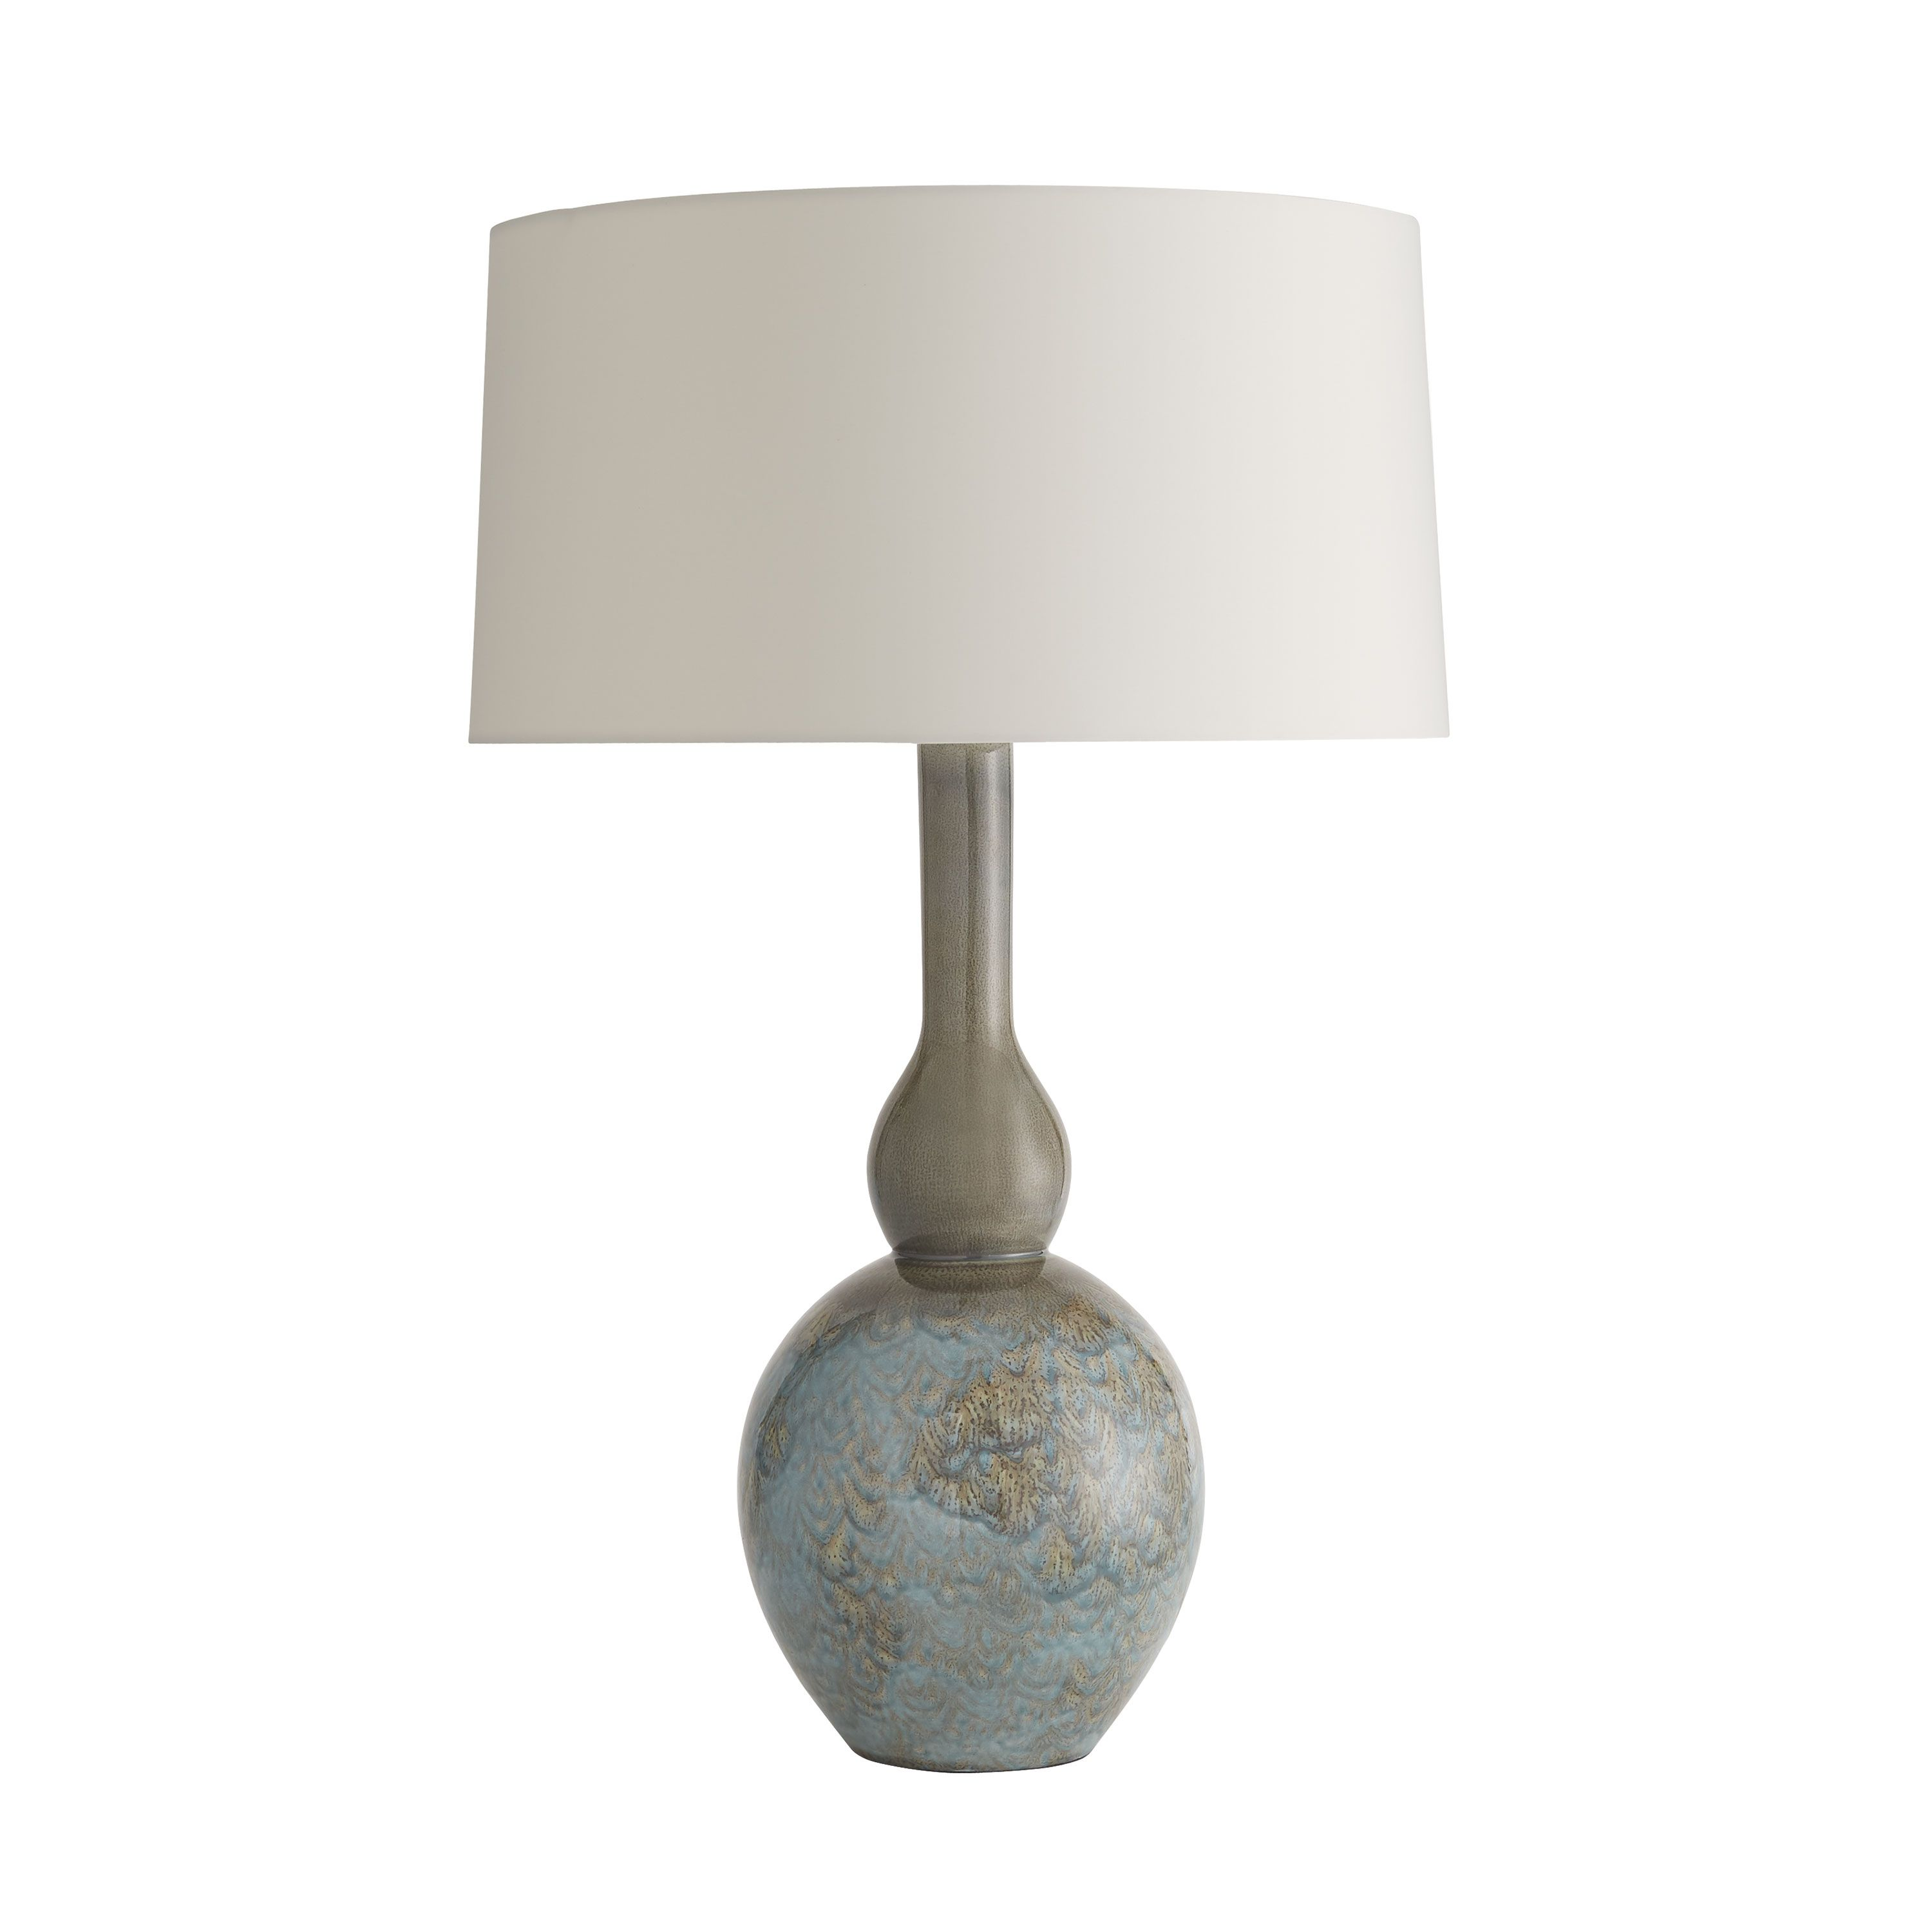 Euless Lamp